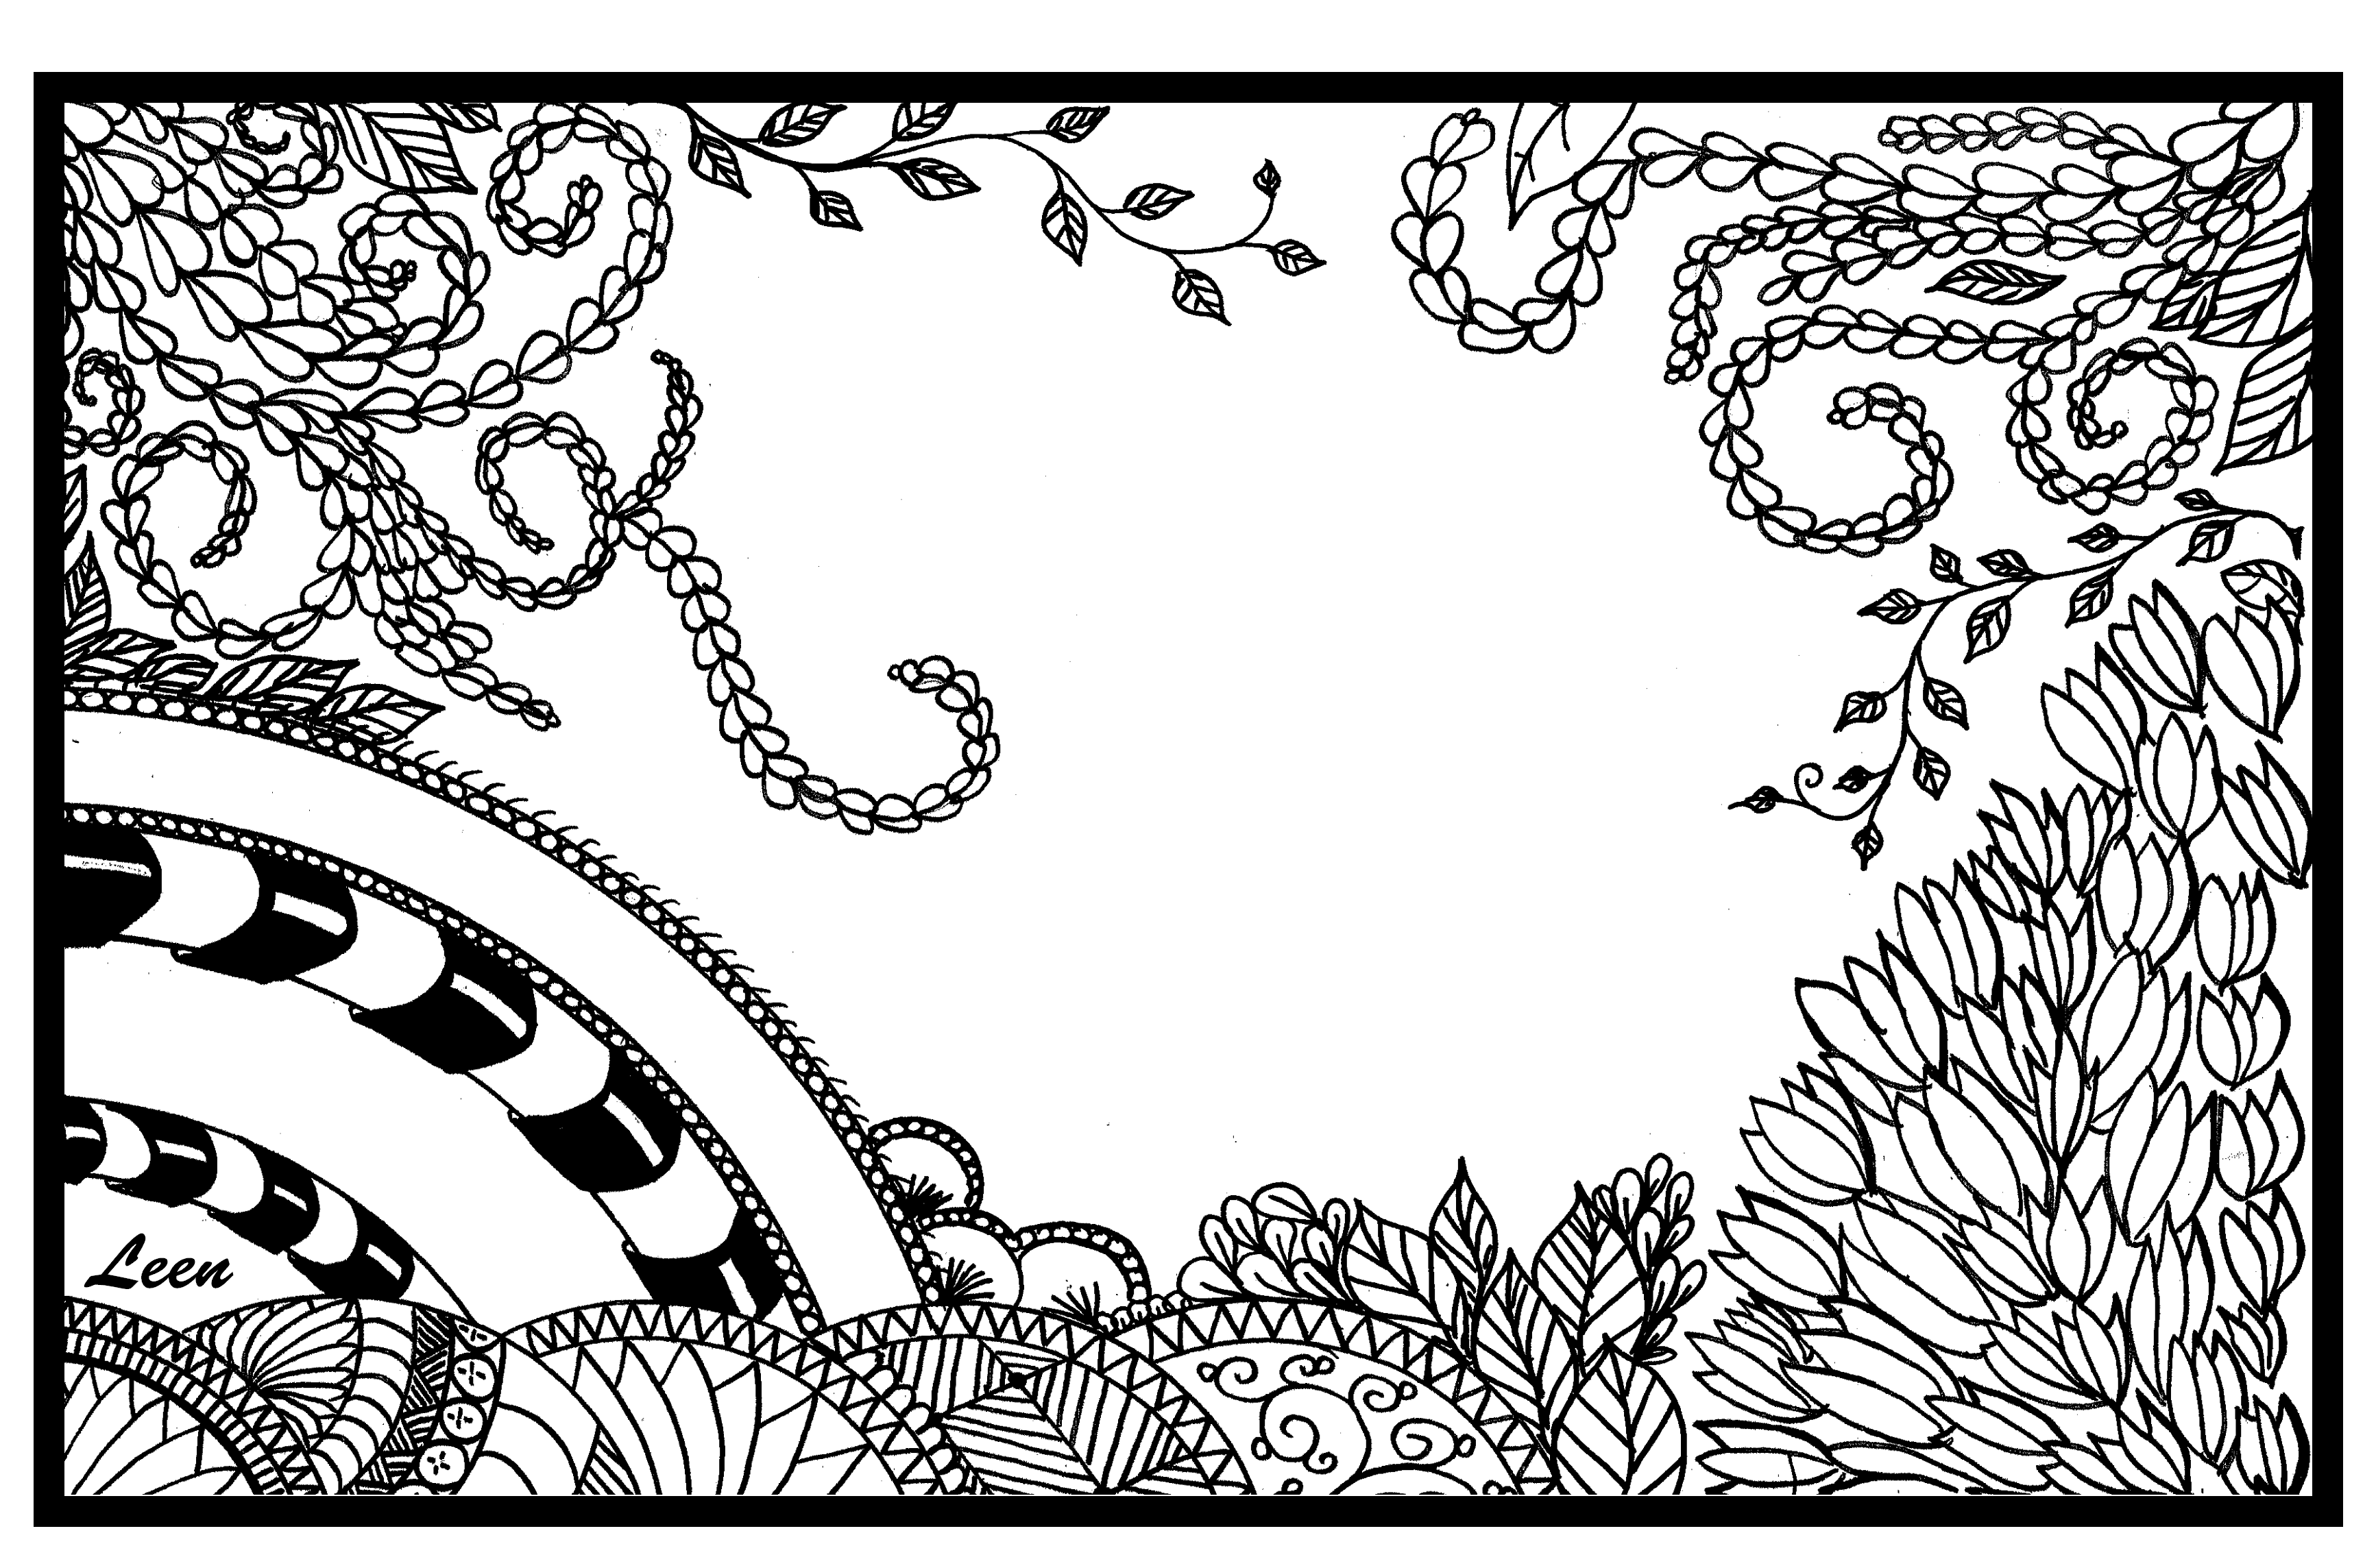 Coloriage Adulte Jungle.Leen Margot Jungle Anti Stress Art Therapie Coloriages